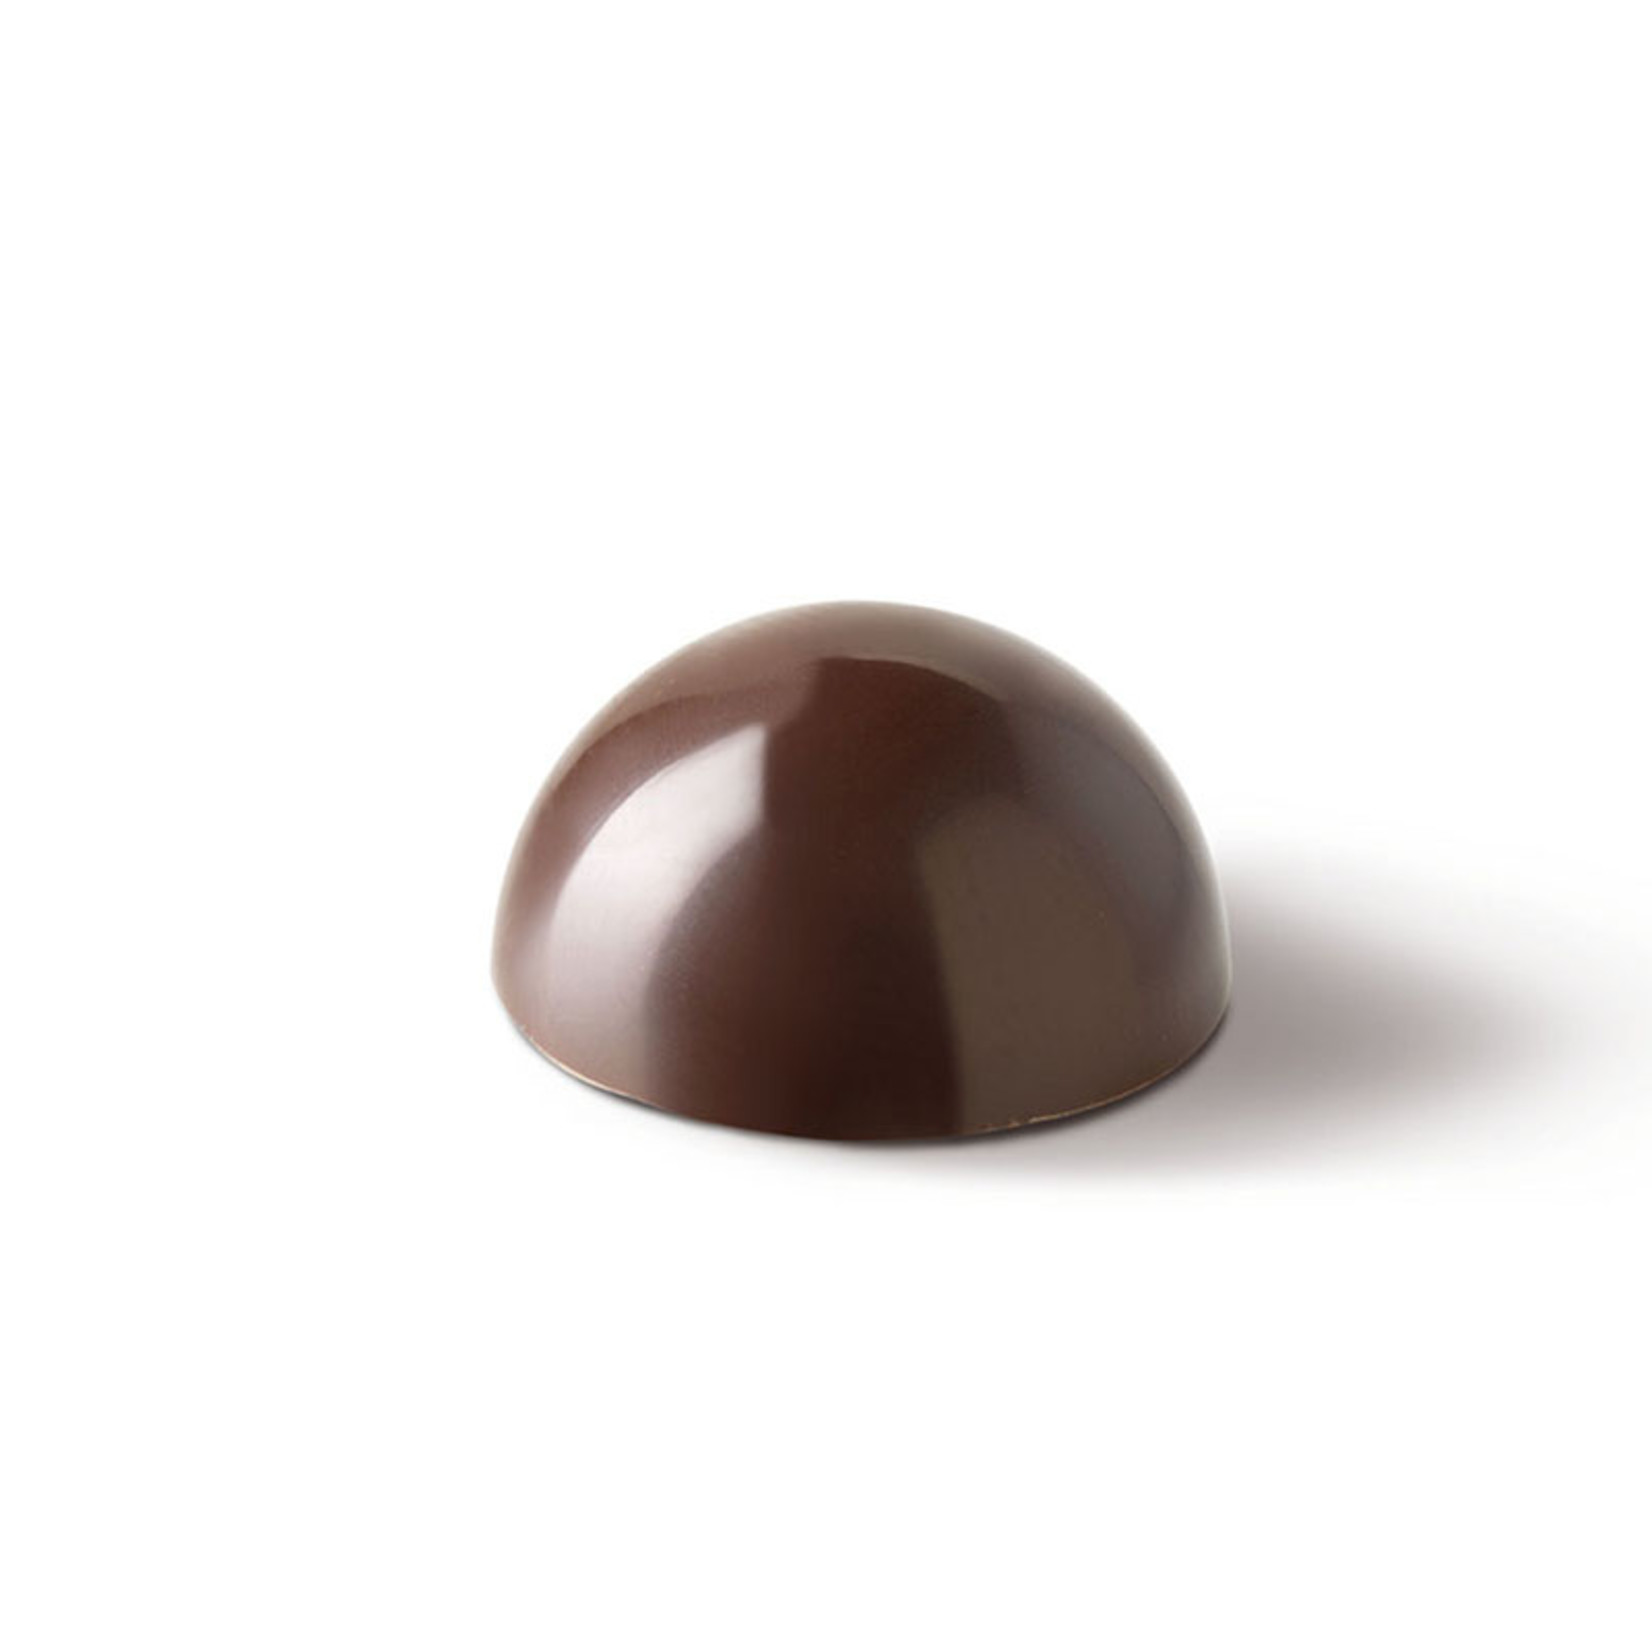 Cacao Barry Cacao Barry - Tritan Chocolate Mold - 6cm Sphere (8 cavity) MLD-090404-M00